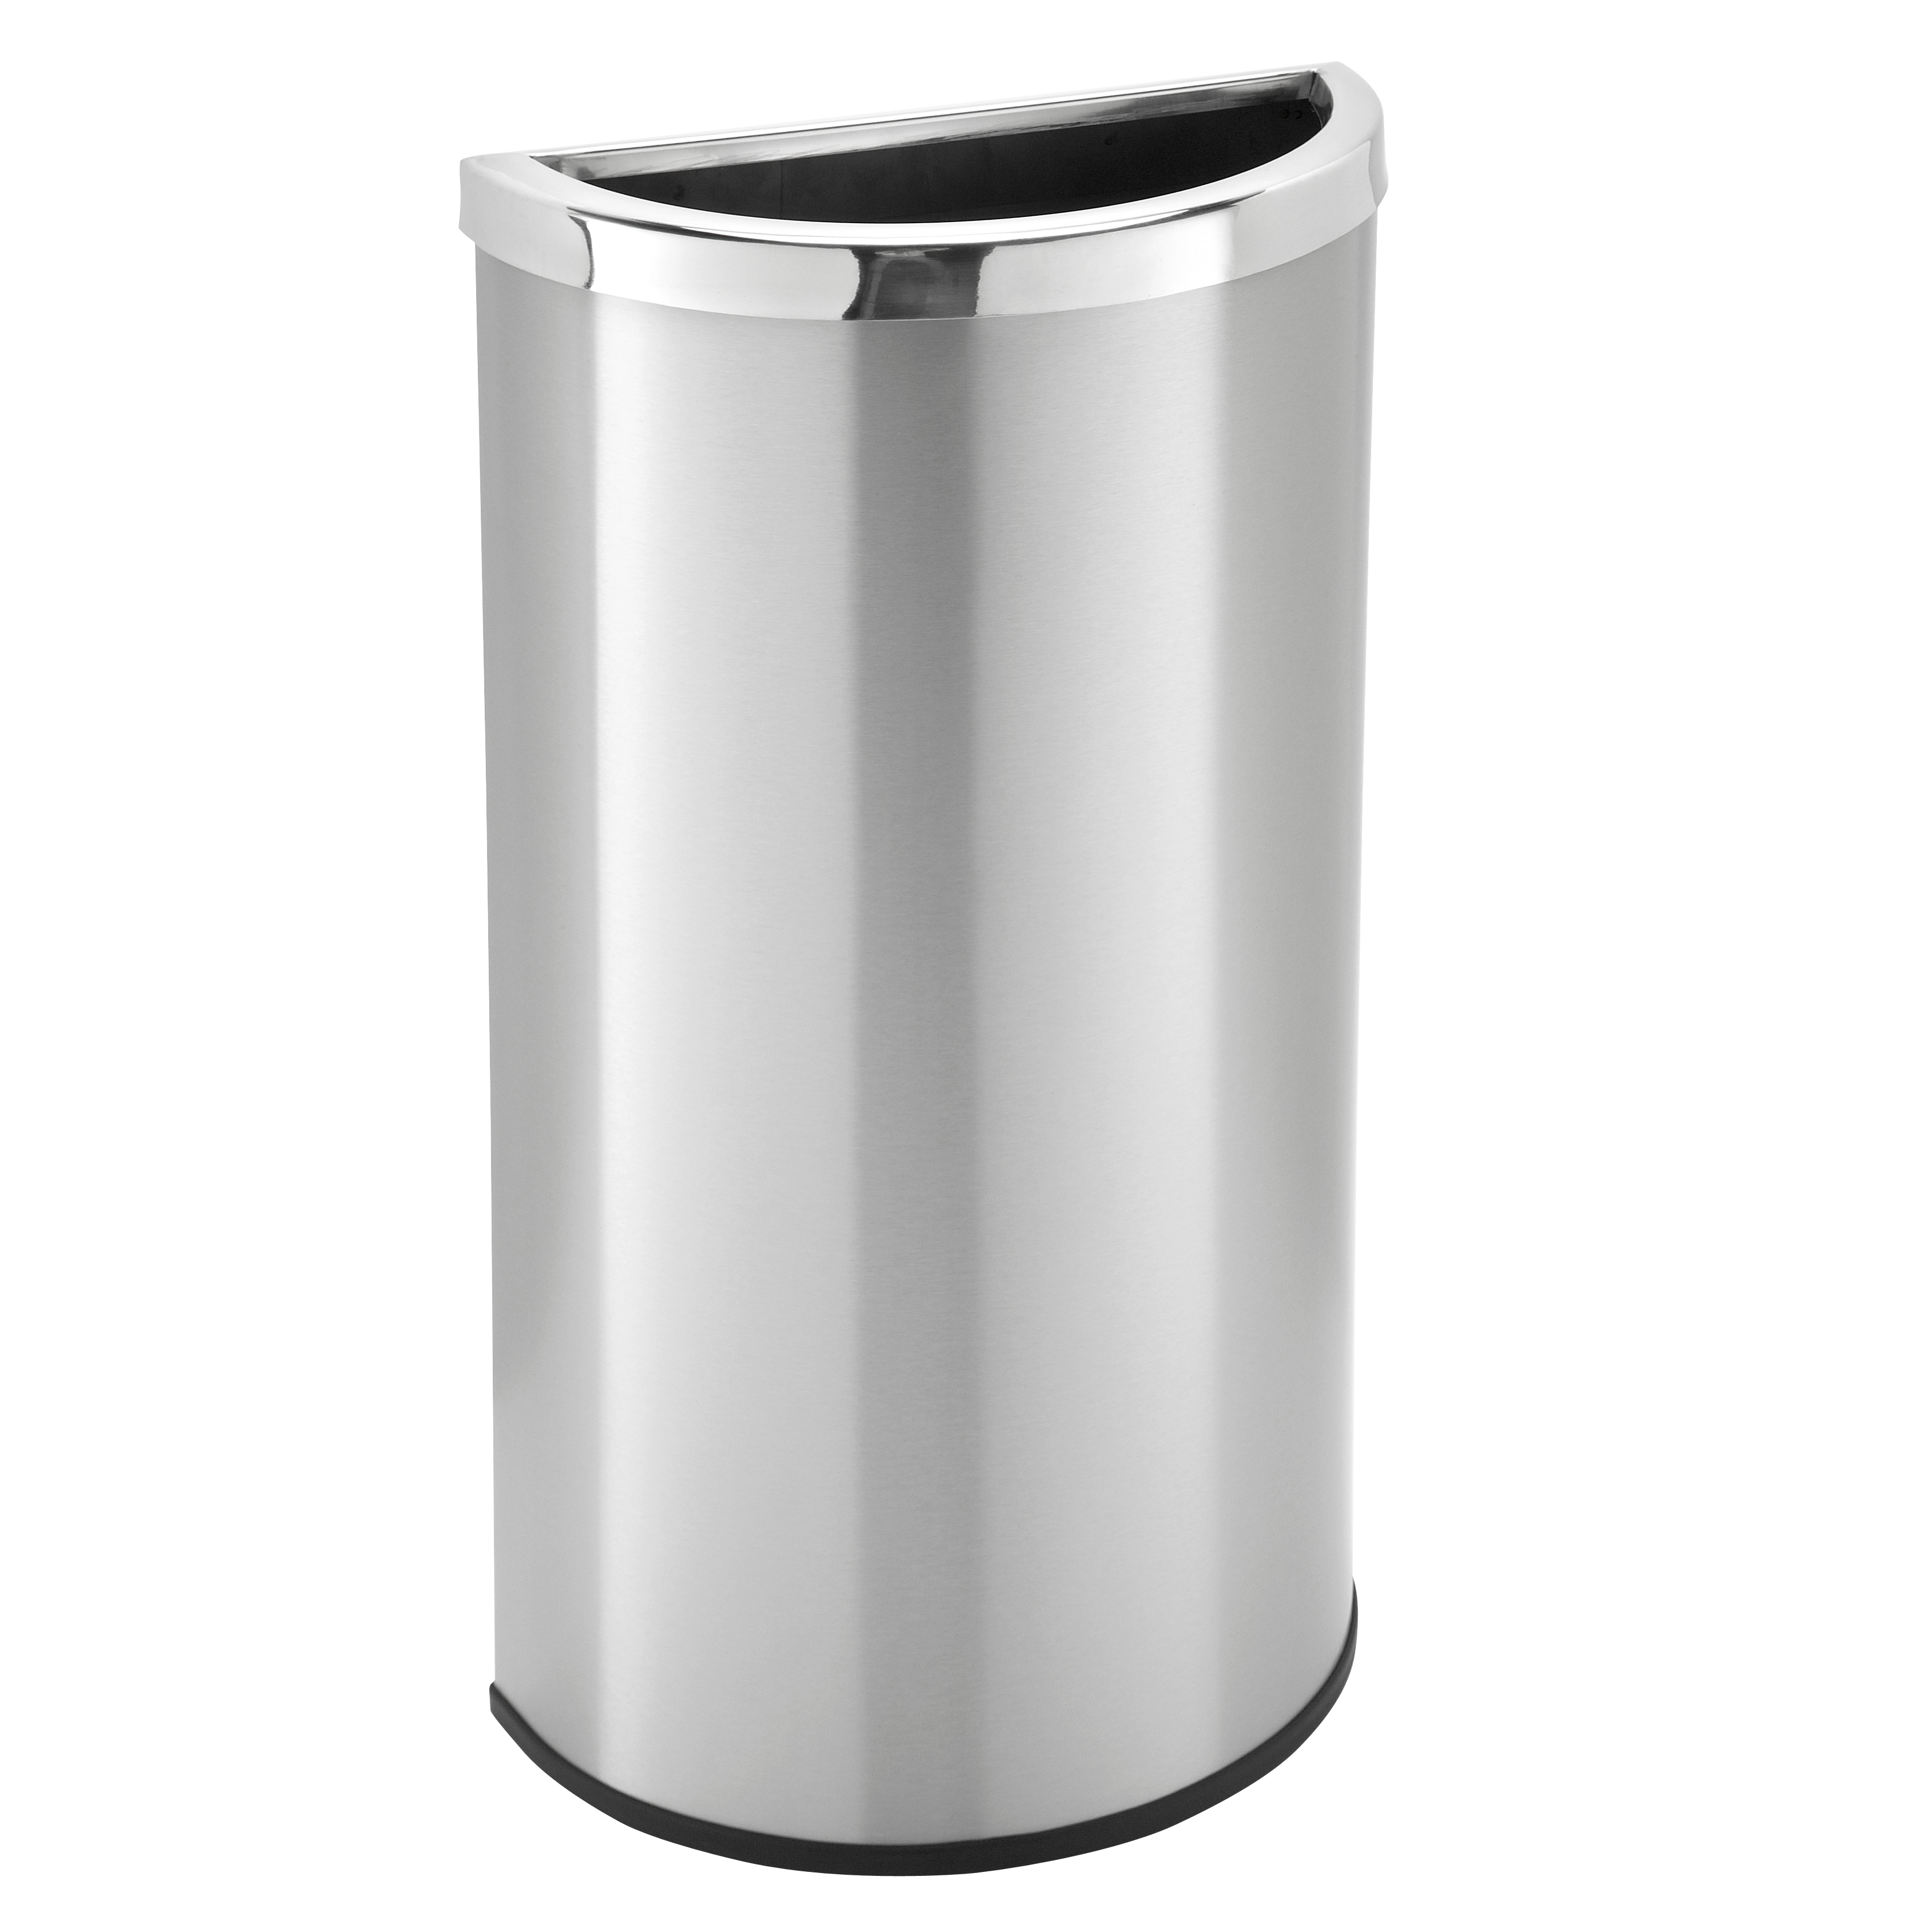 8 Gallon Stainless Steel Half Round Garbage Can Trash